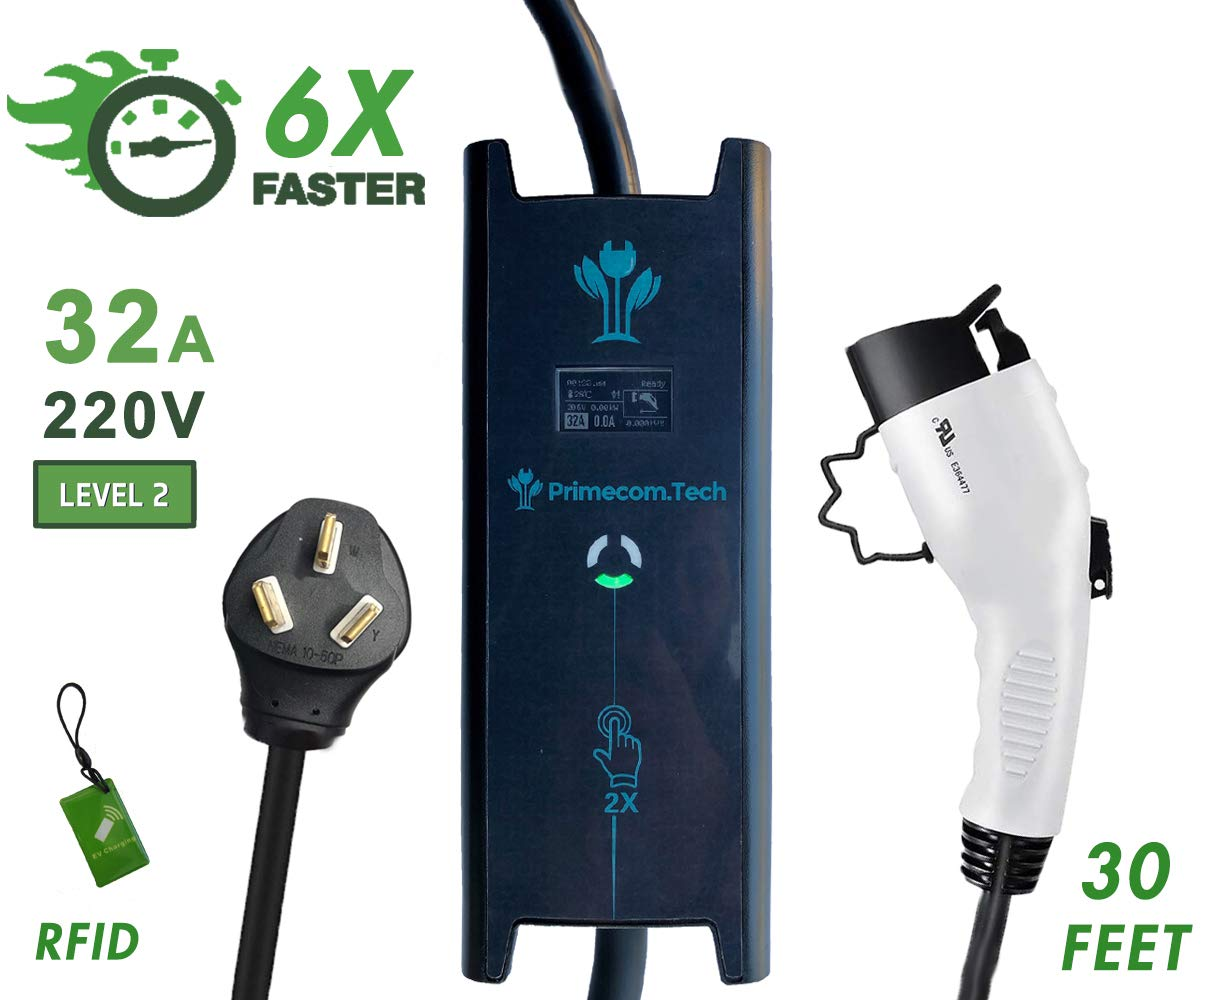 6-50P, 32 Amp PRIMECOM 30 Feet Level 2 Electric Vehicle 220//240V, 32Amp//40Amp for Tesla EV 10-50P /& 14-50P Charger 32 and 40 Amp 6-50P